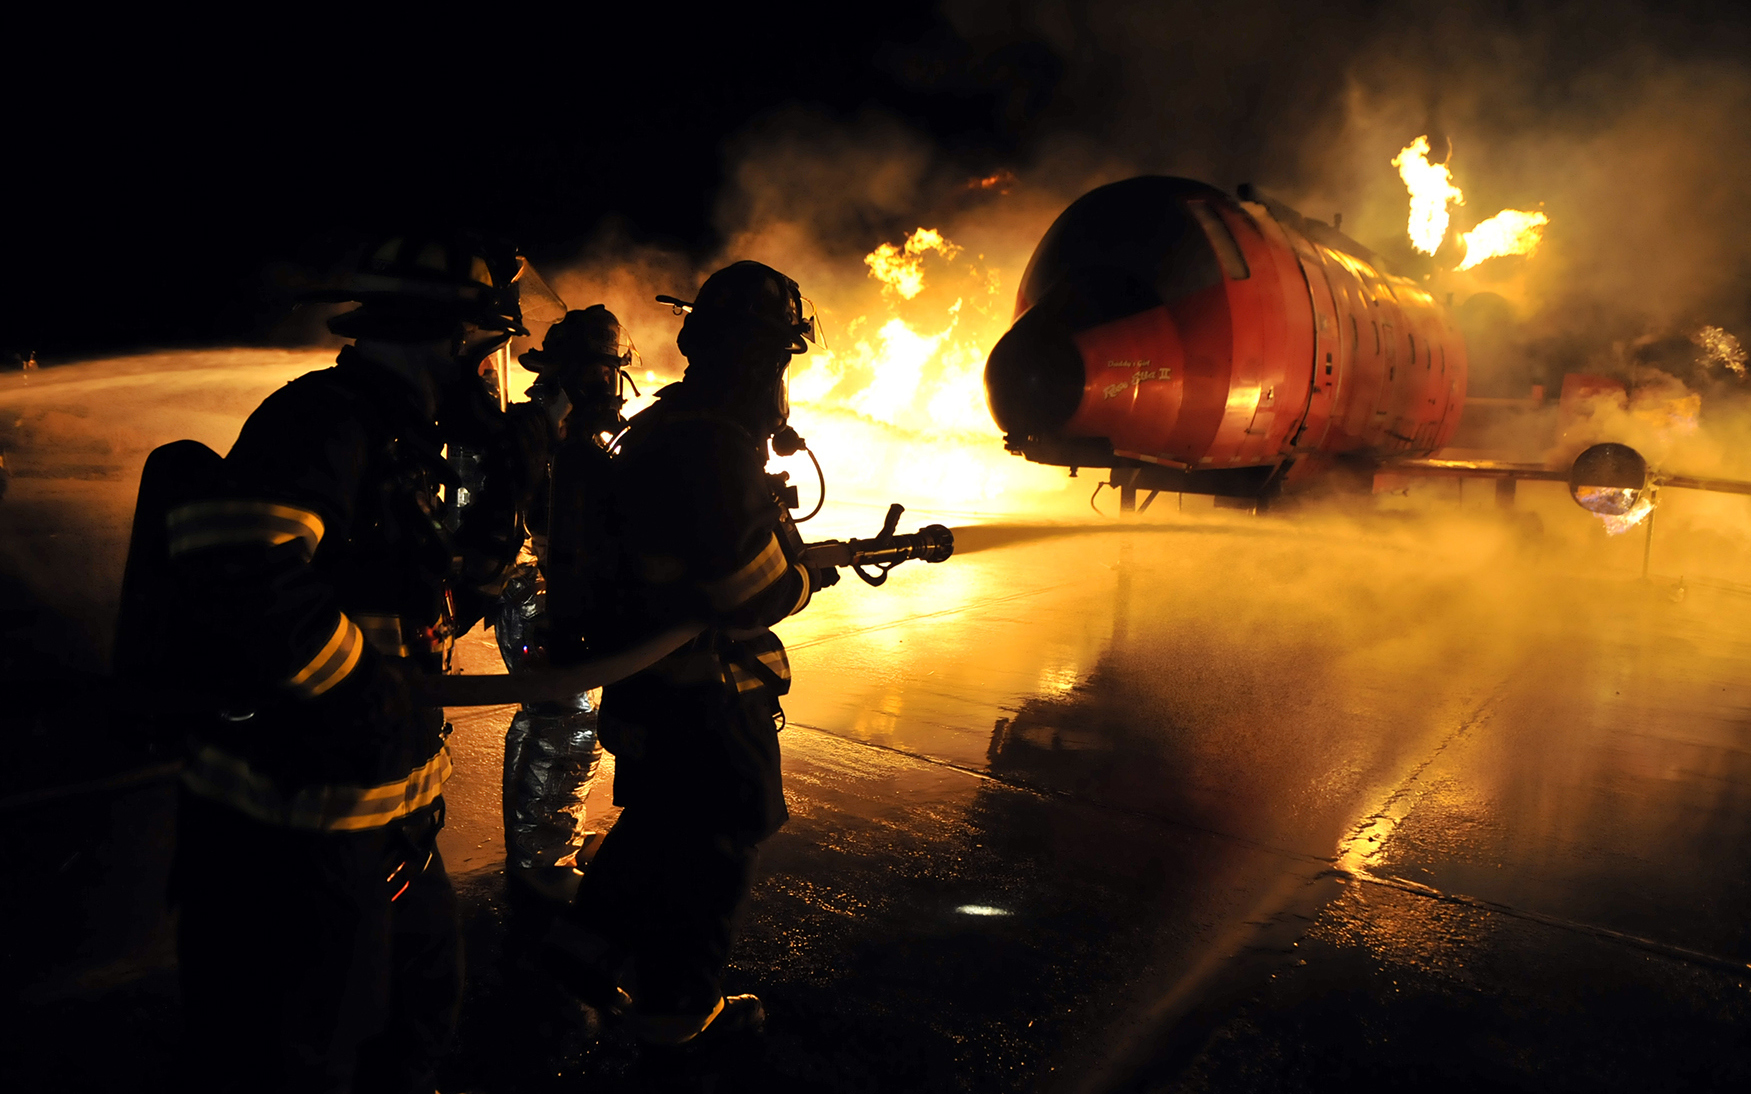 Firefighters Fire Night wallpaper 1751x1094 72735 WallpaperUP 1751x1094